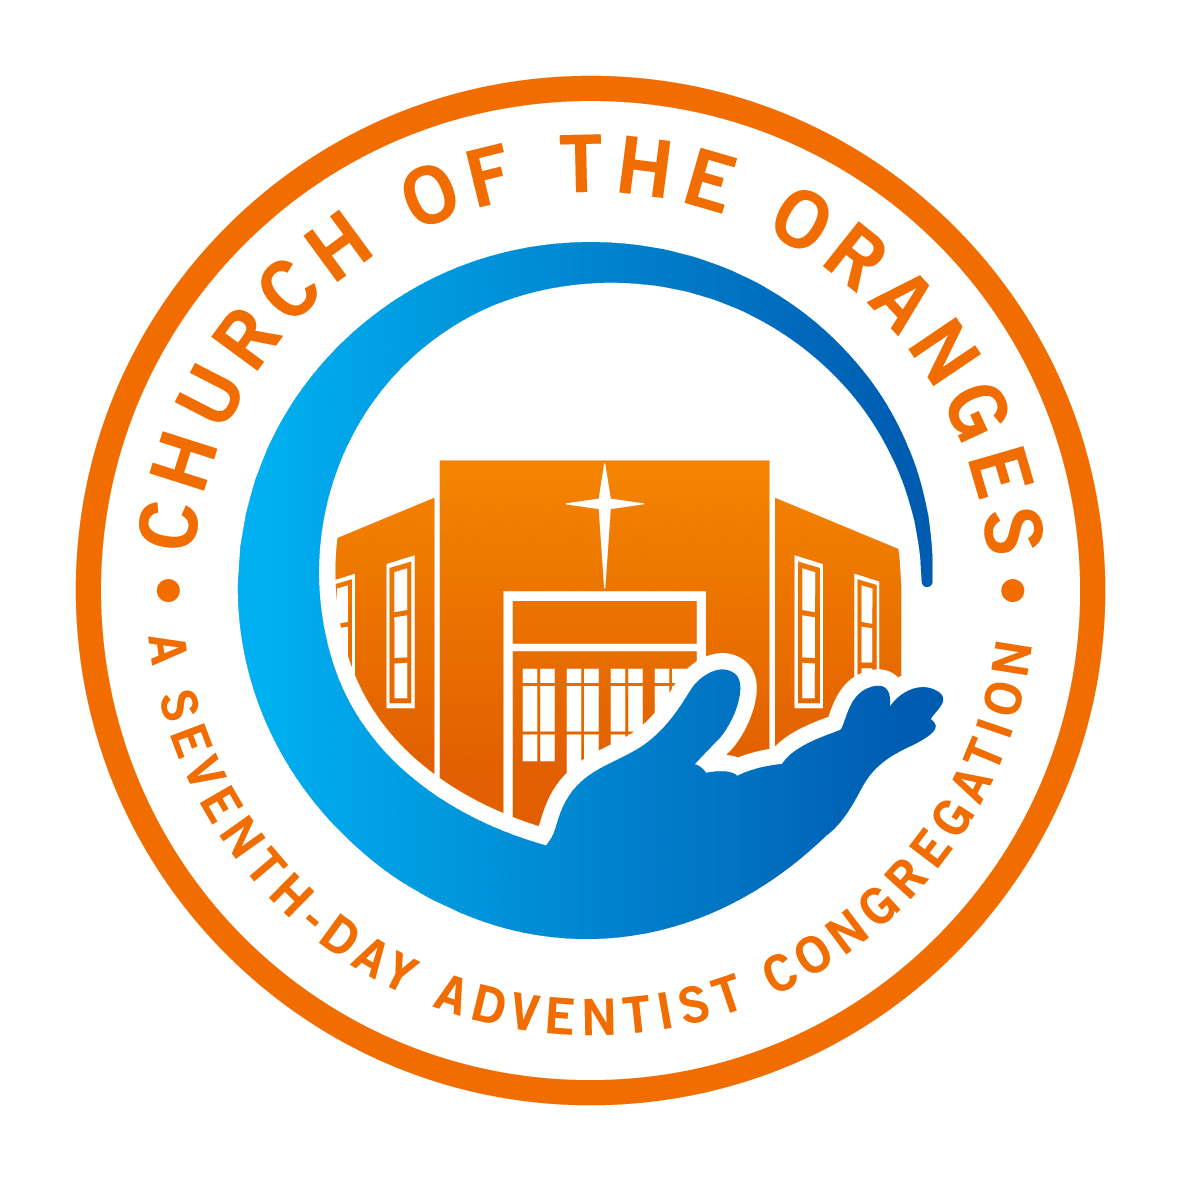 Seventh-Day Adventist Church of the Oranges